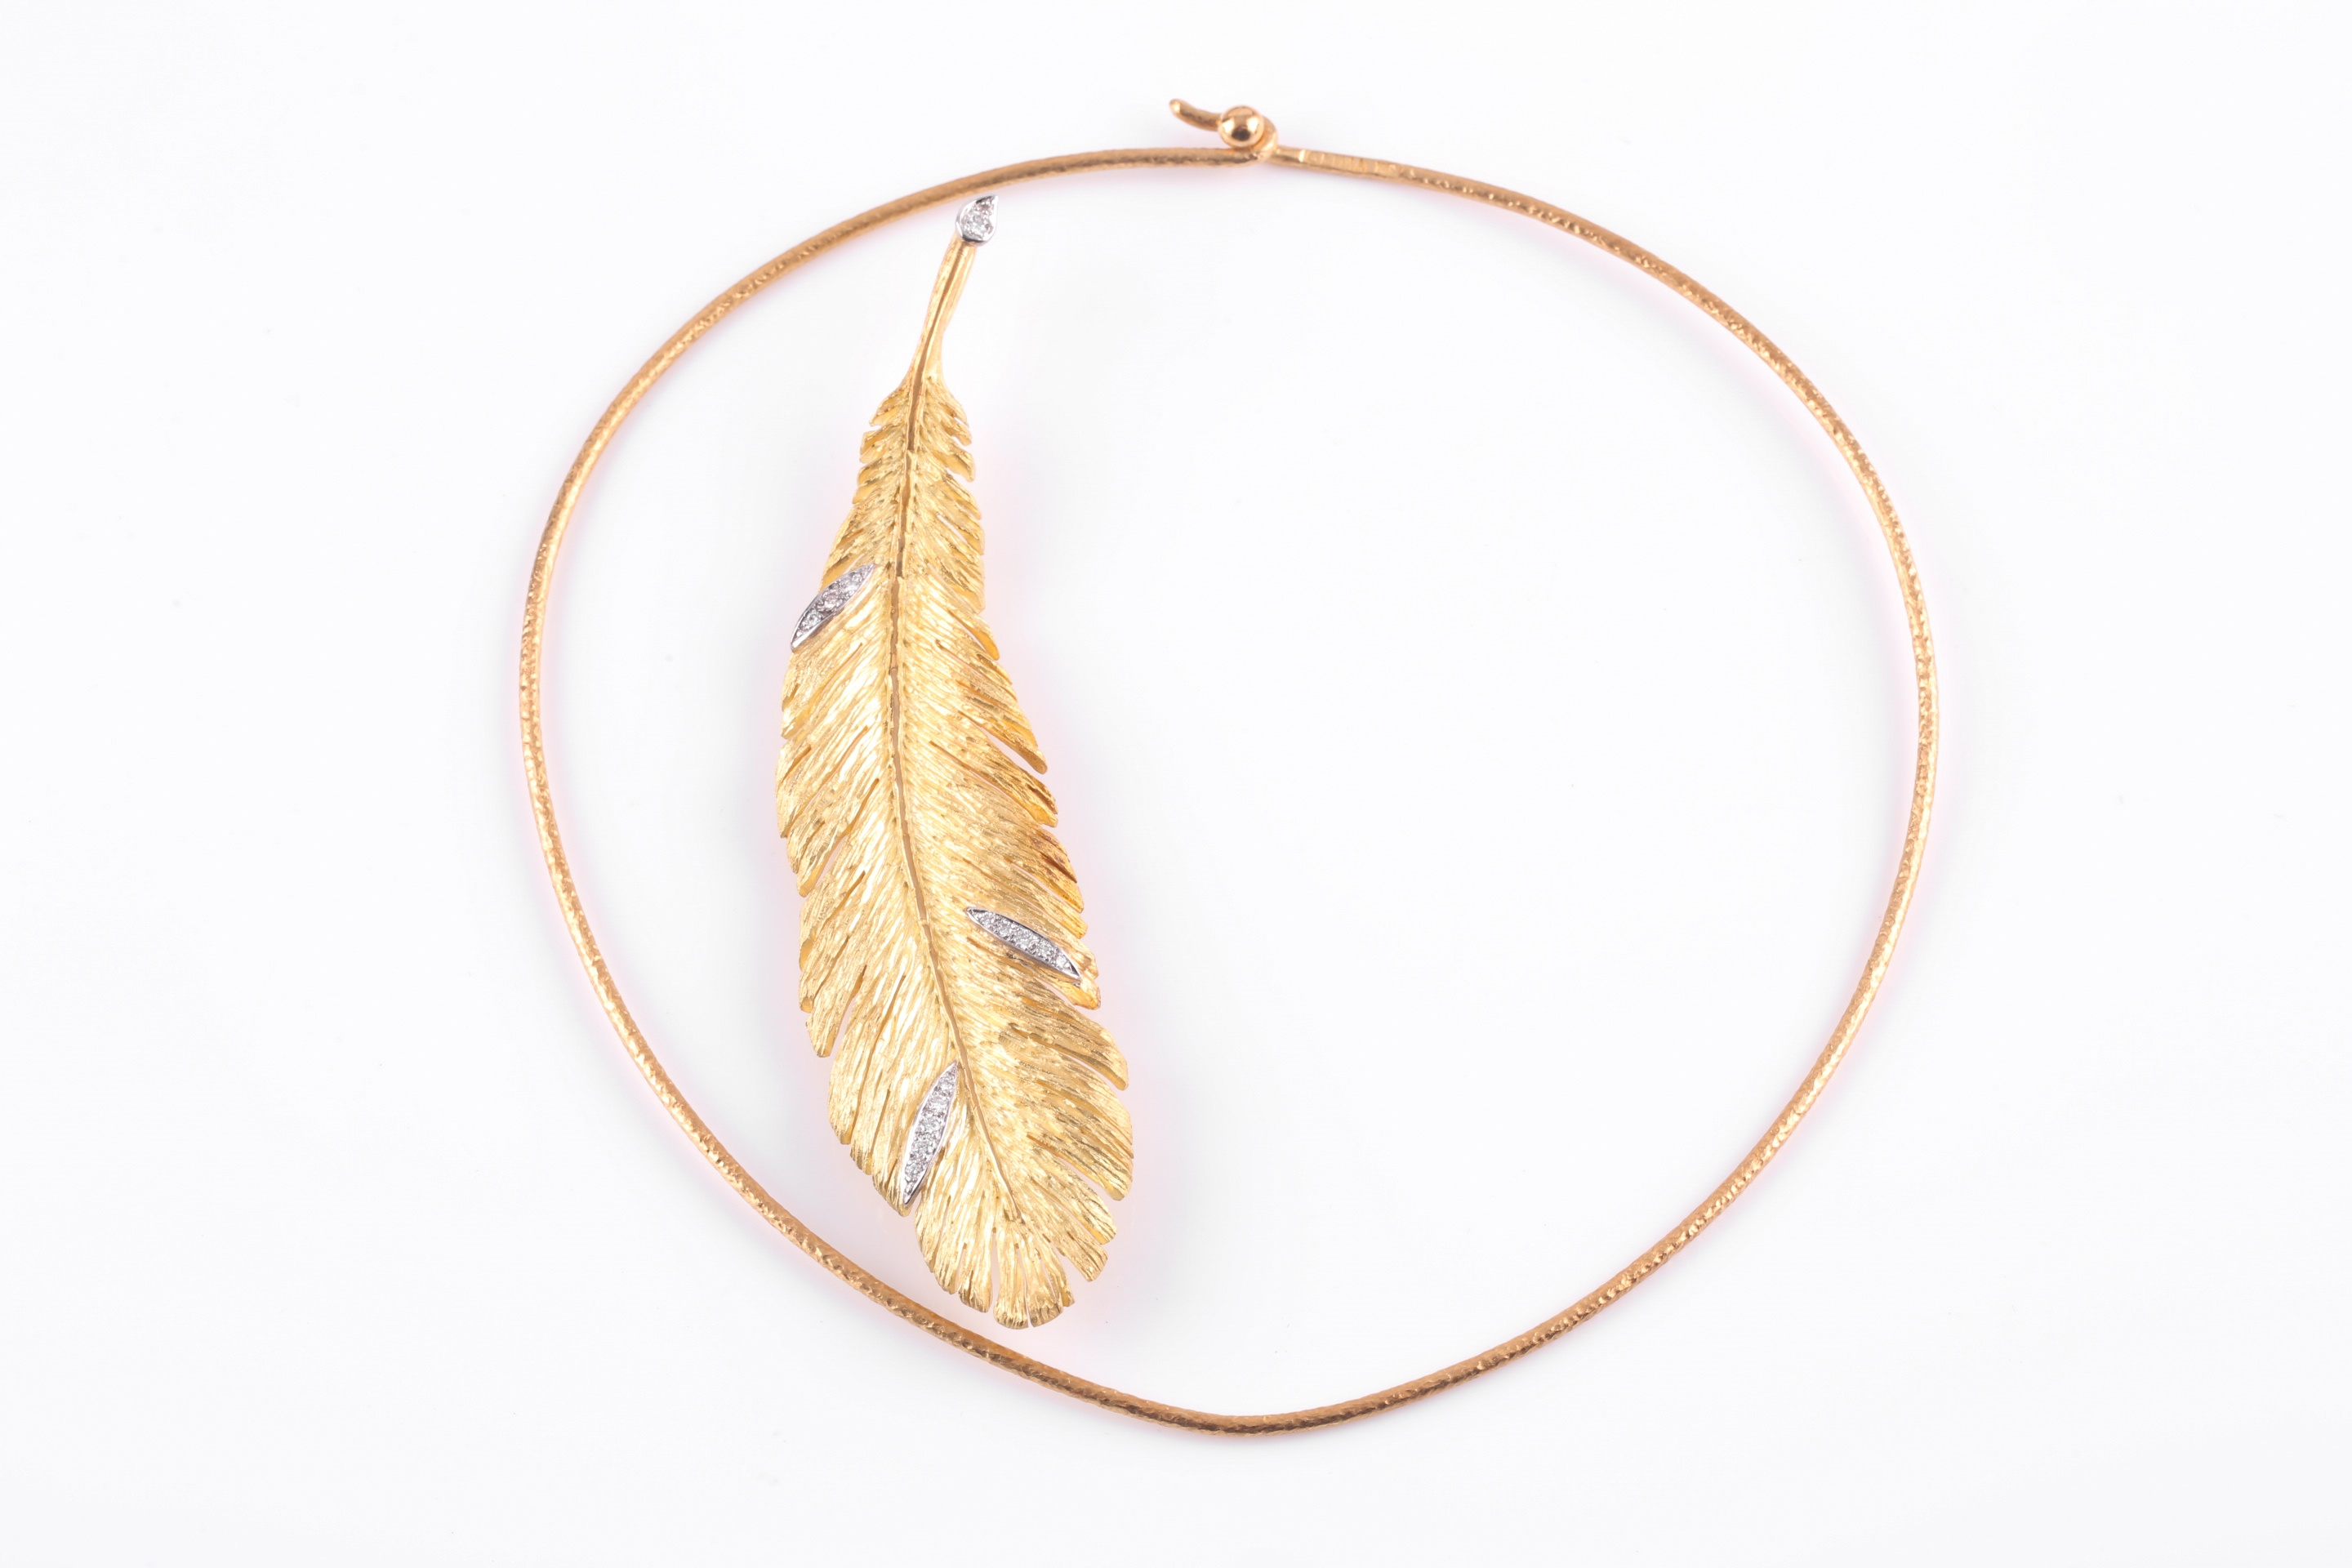 Andrew Grima An 18ct yellow gold pendant necklace